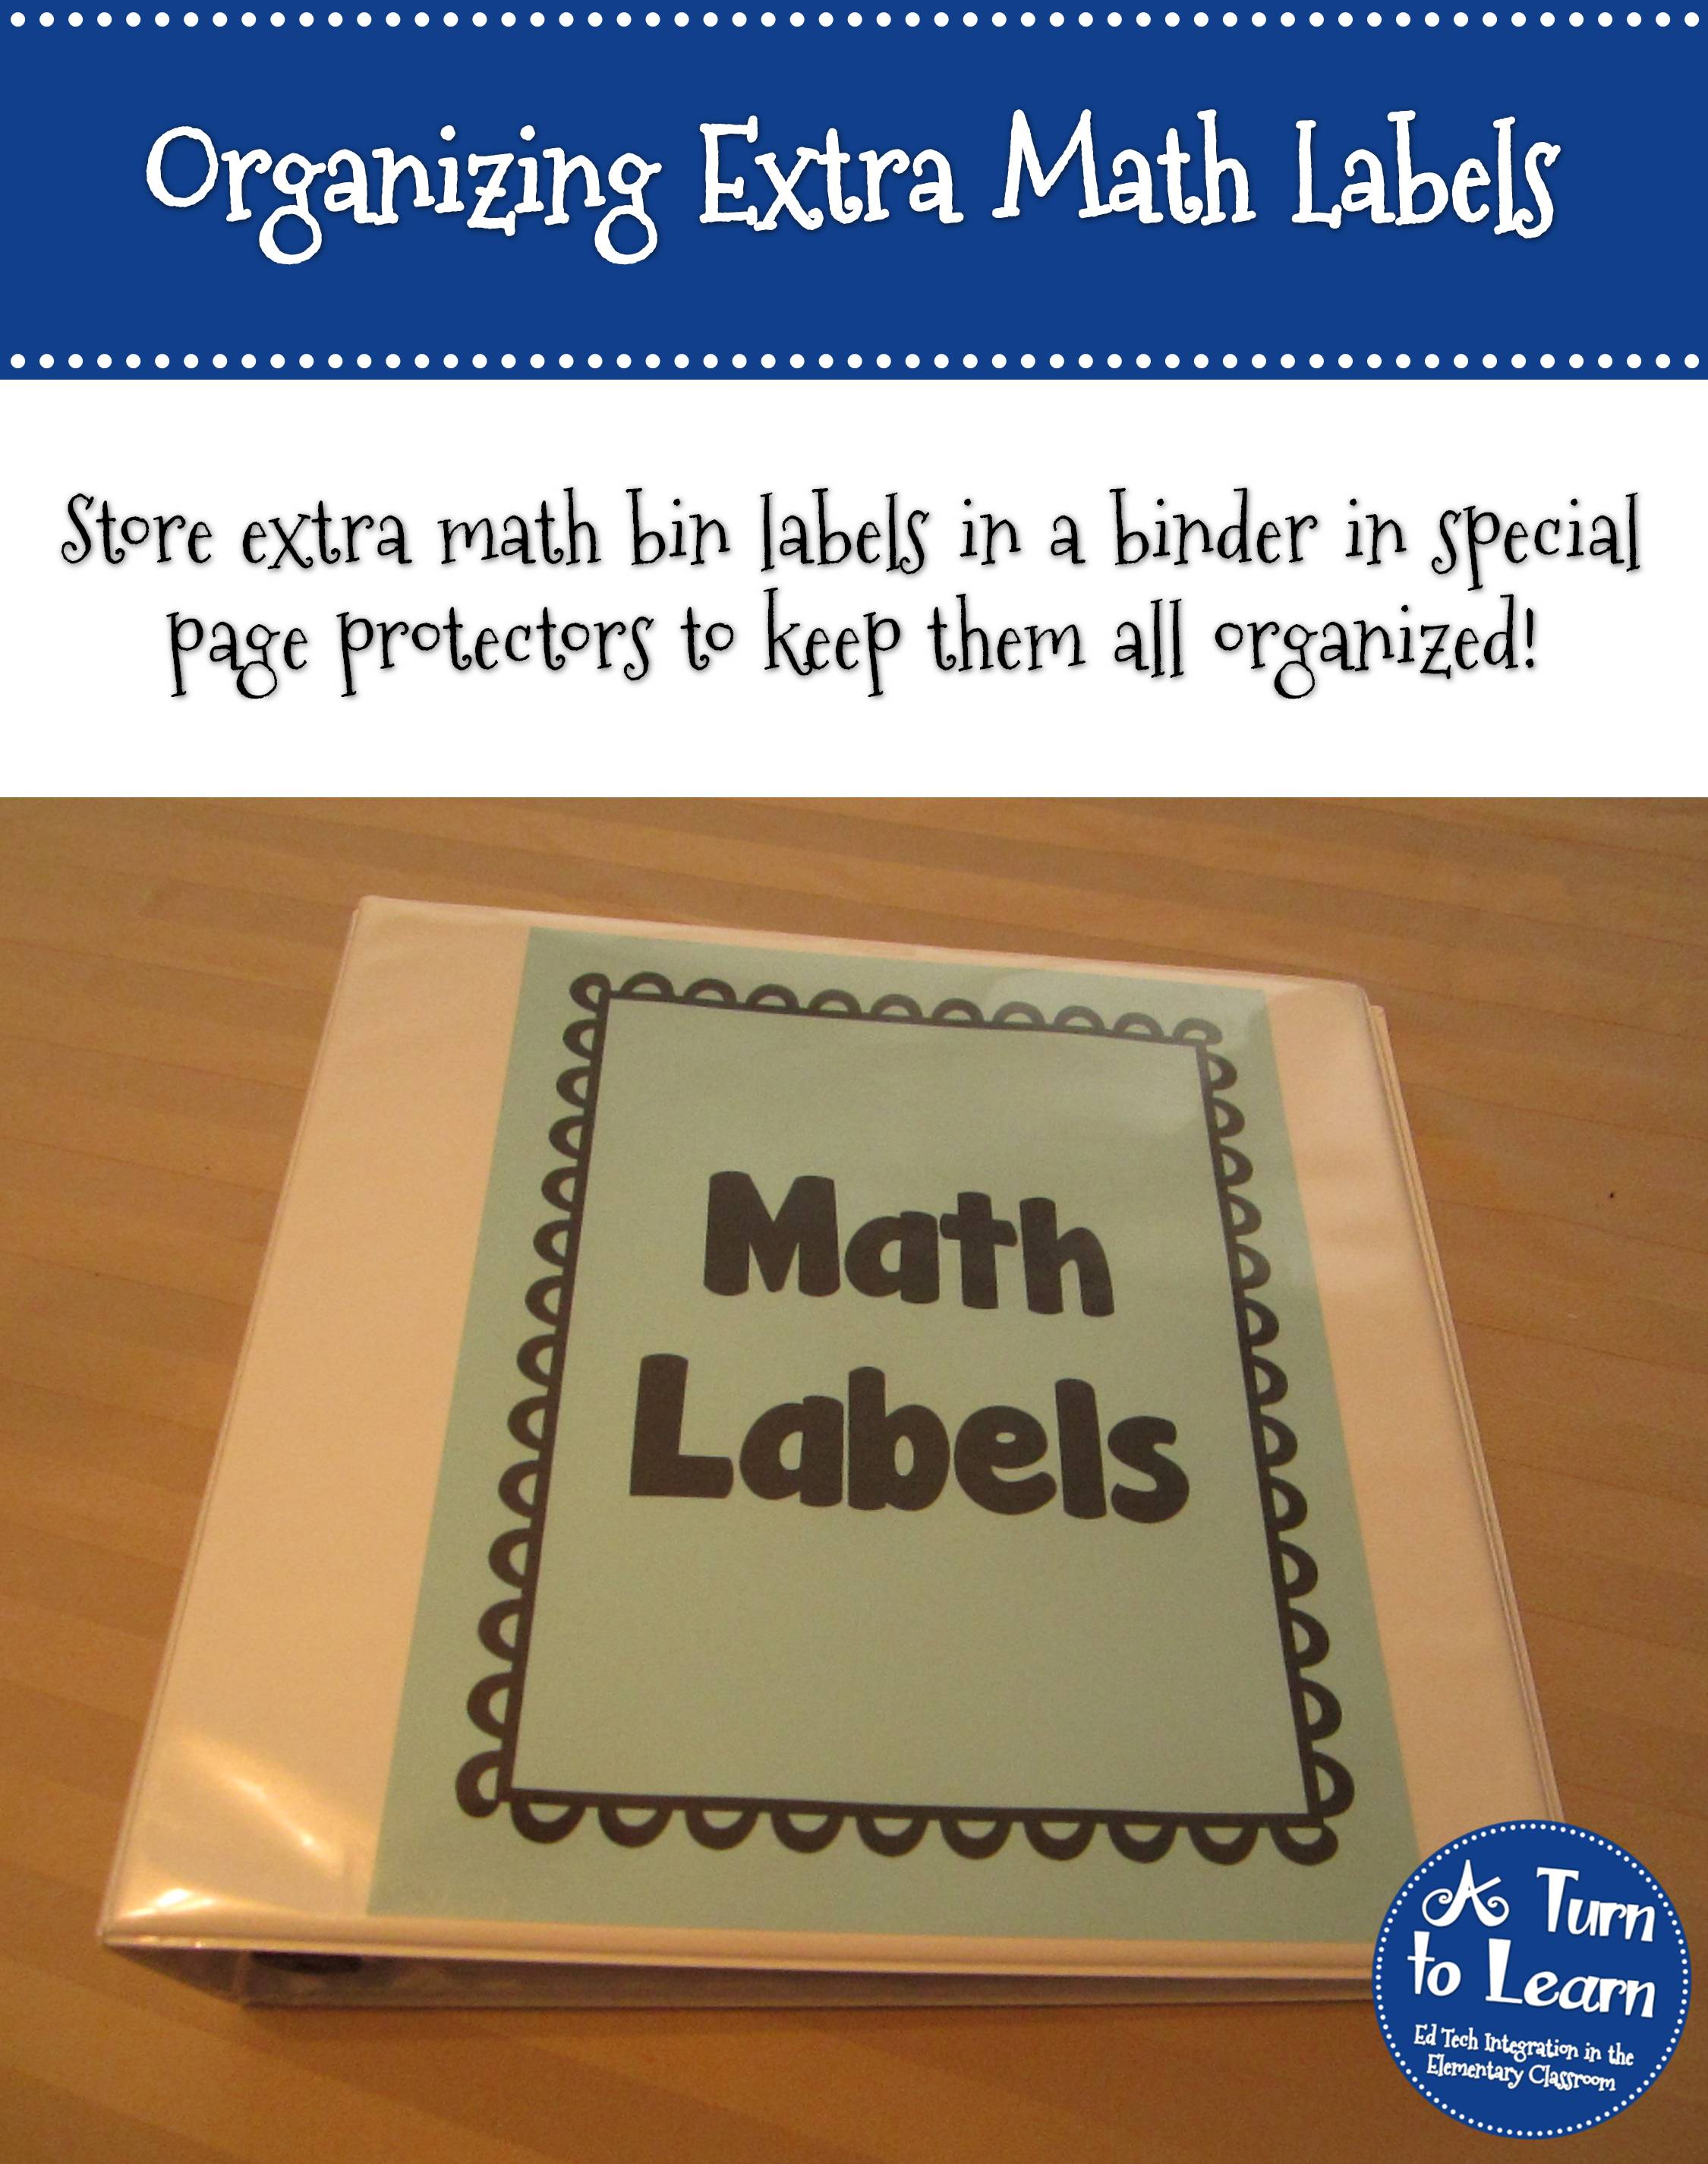 Organize Extra Math Manipulative Labels • A Turn to Learn